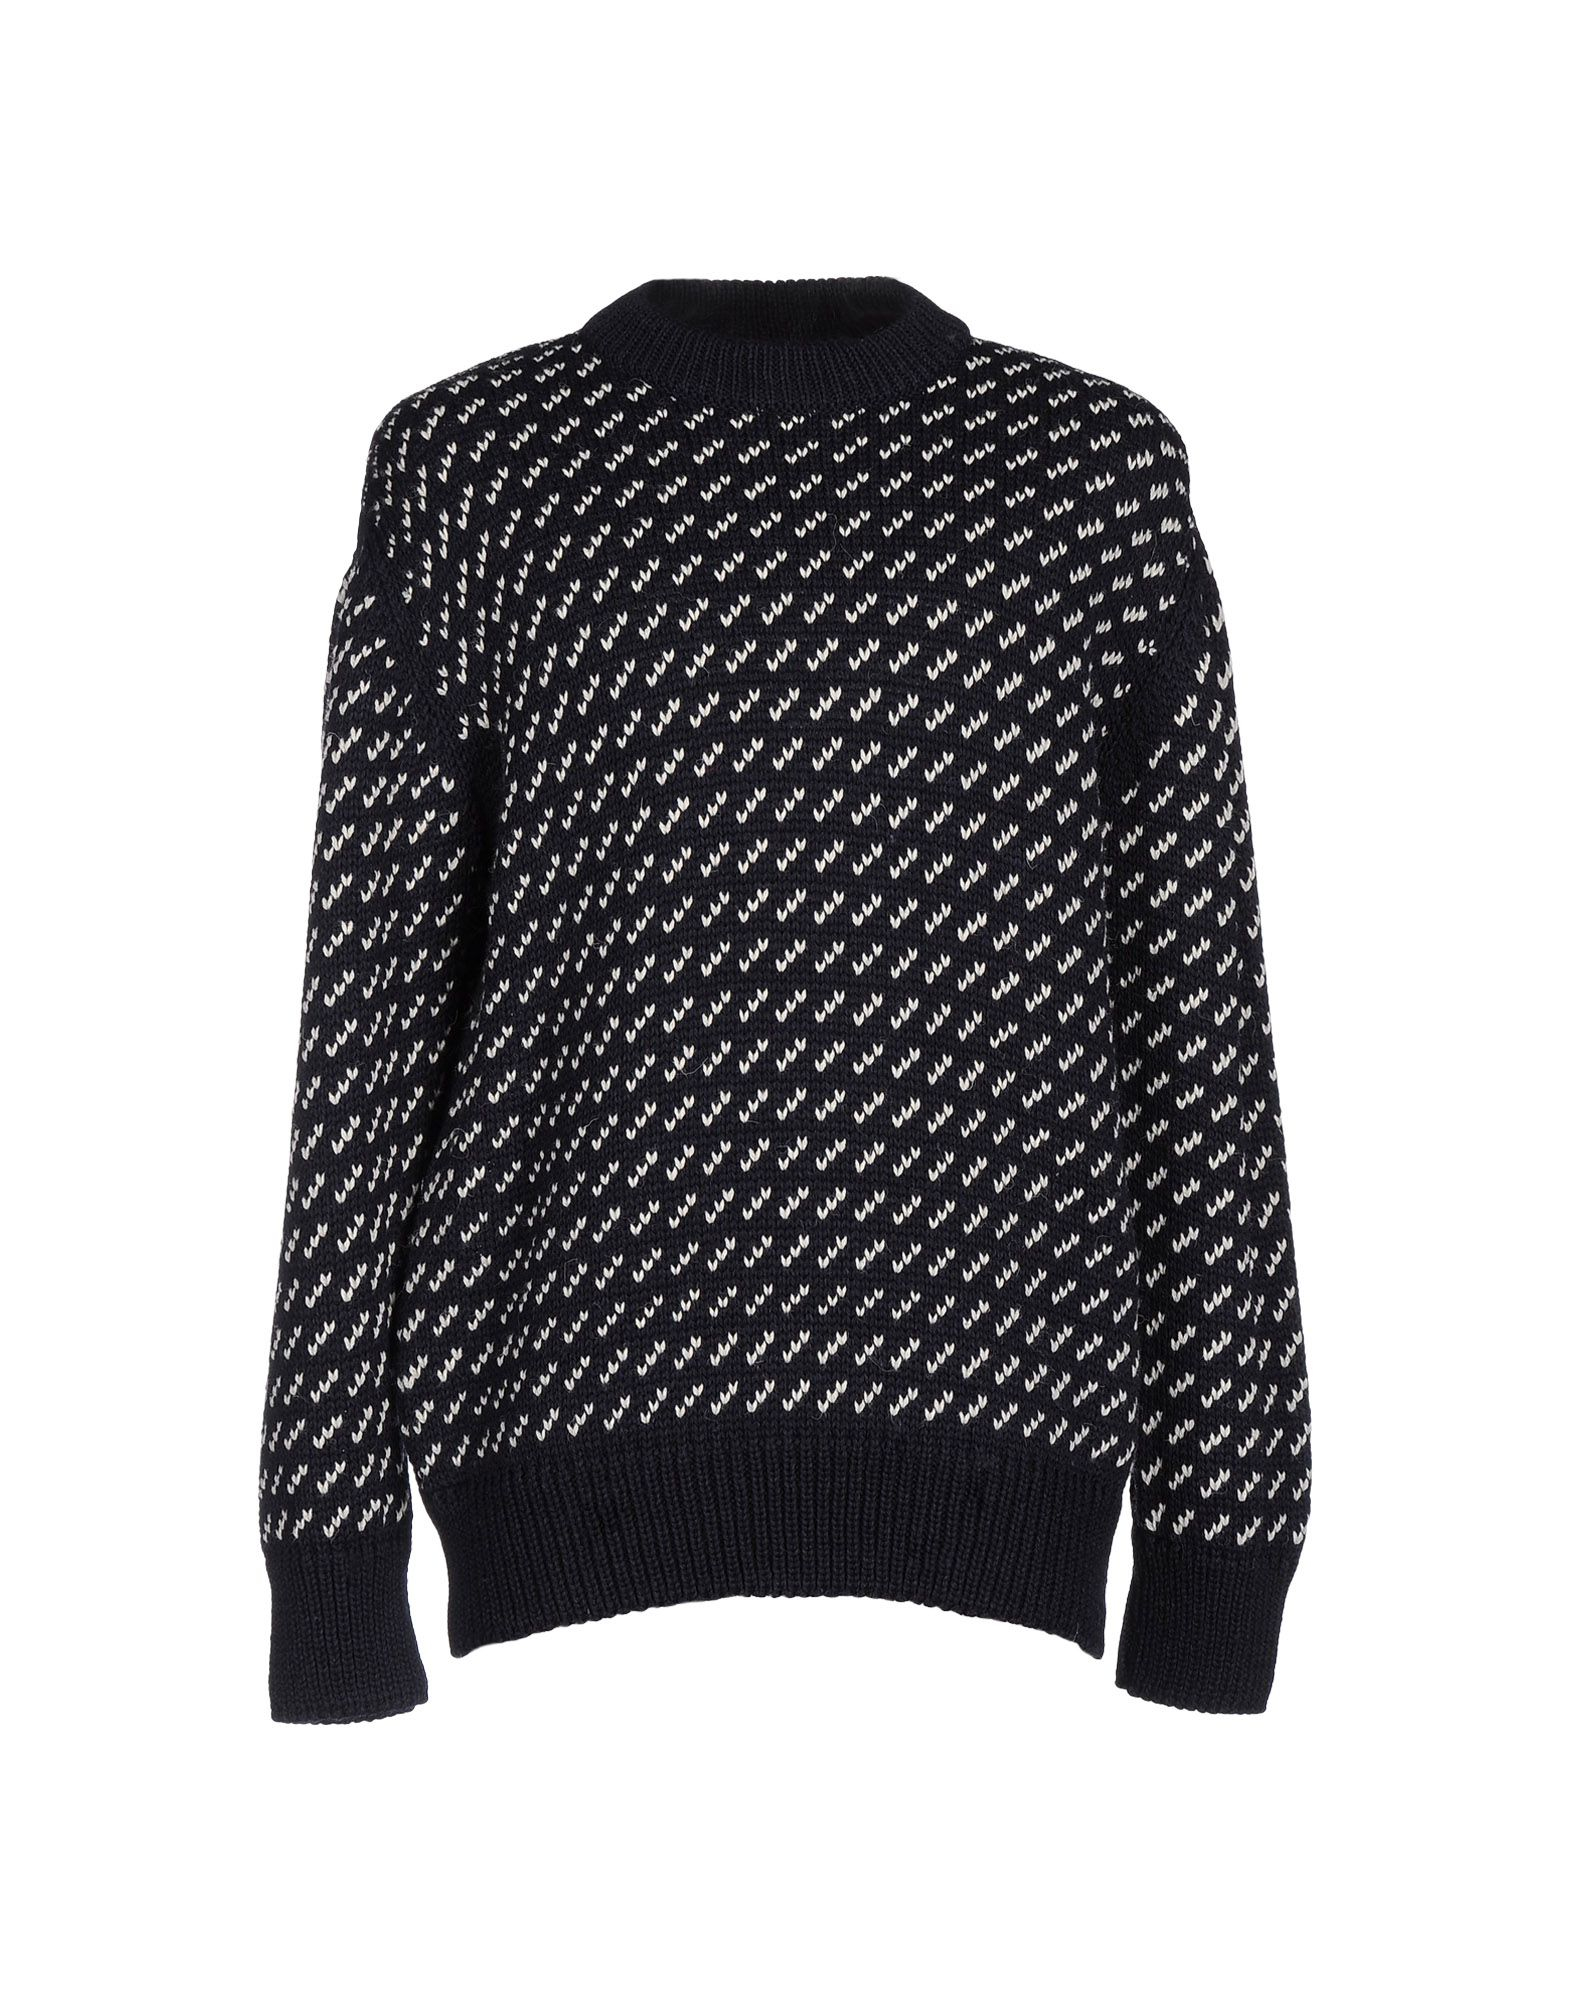 324c88ad4d649 Lyst - Gloverall Jumper With Pattern in Black for Men